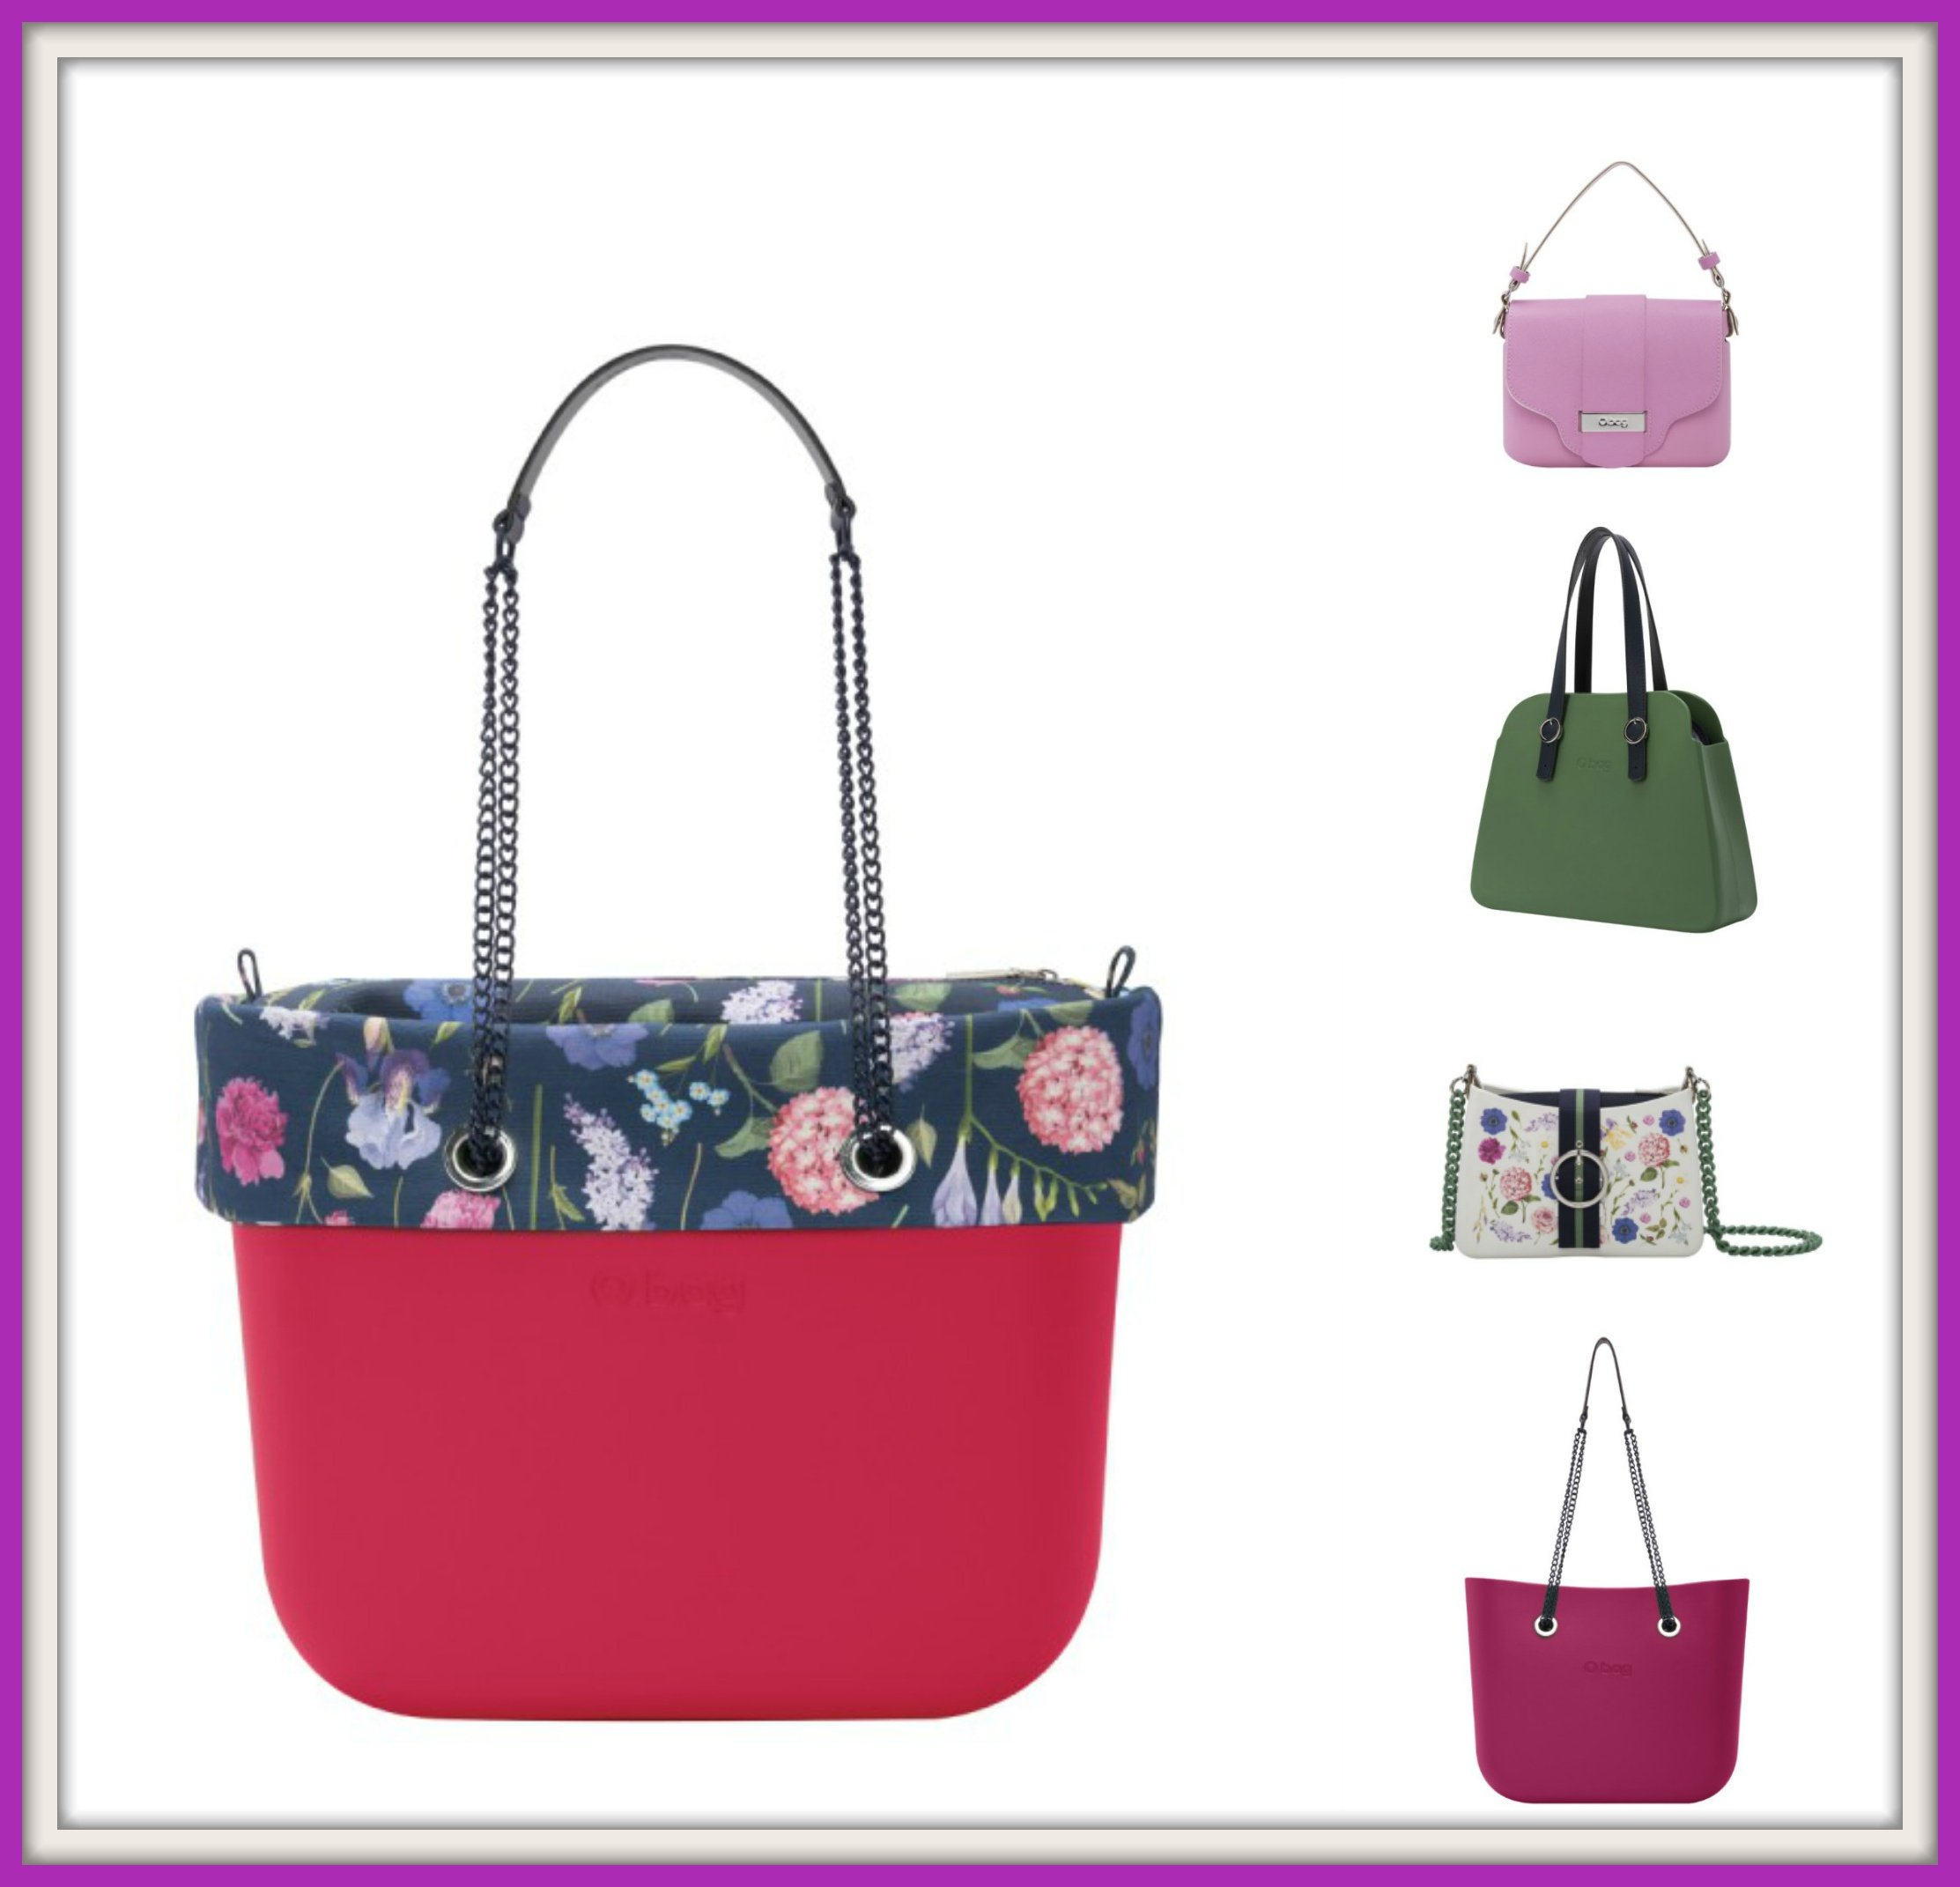 Borse O Bag primavera estate 2019  prime anticipazioni - Lei Trendy 0572561ee66